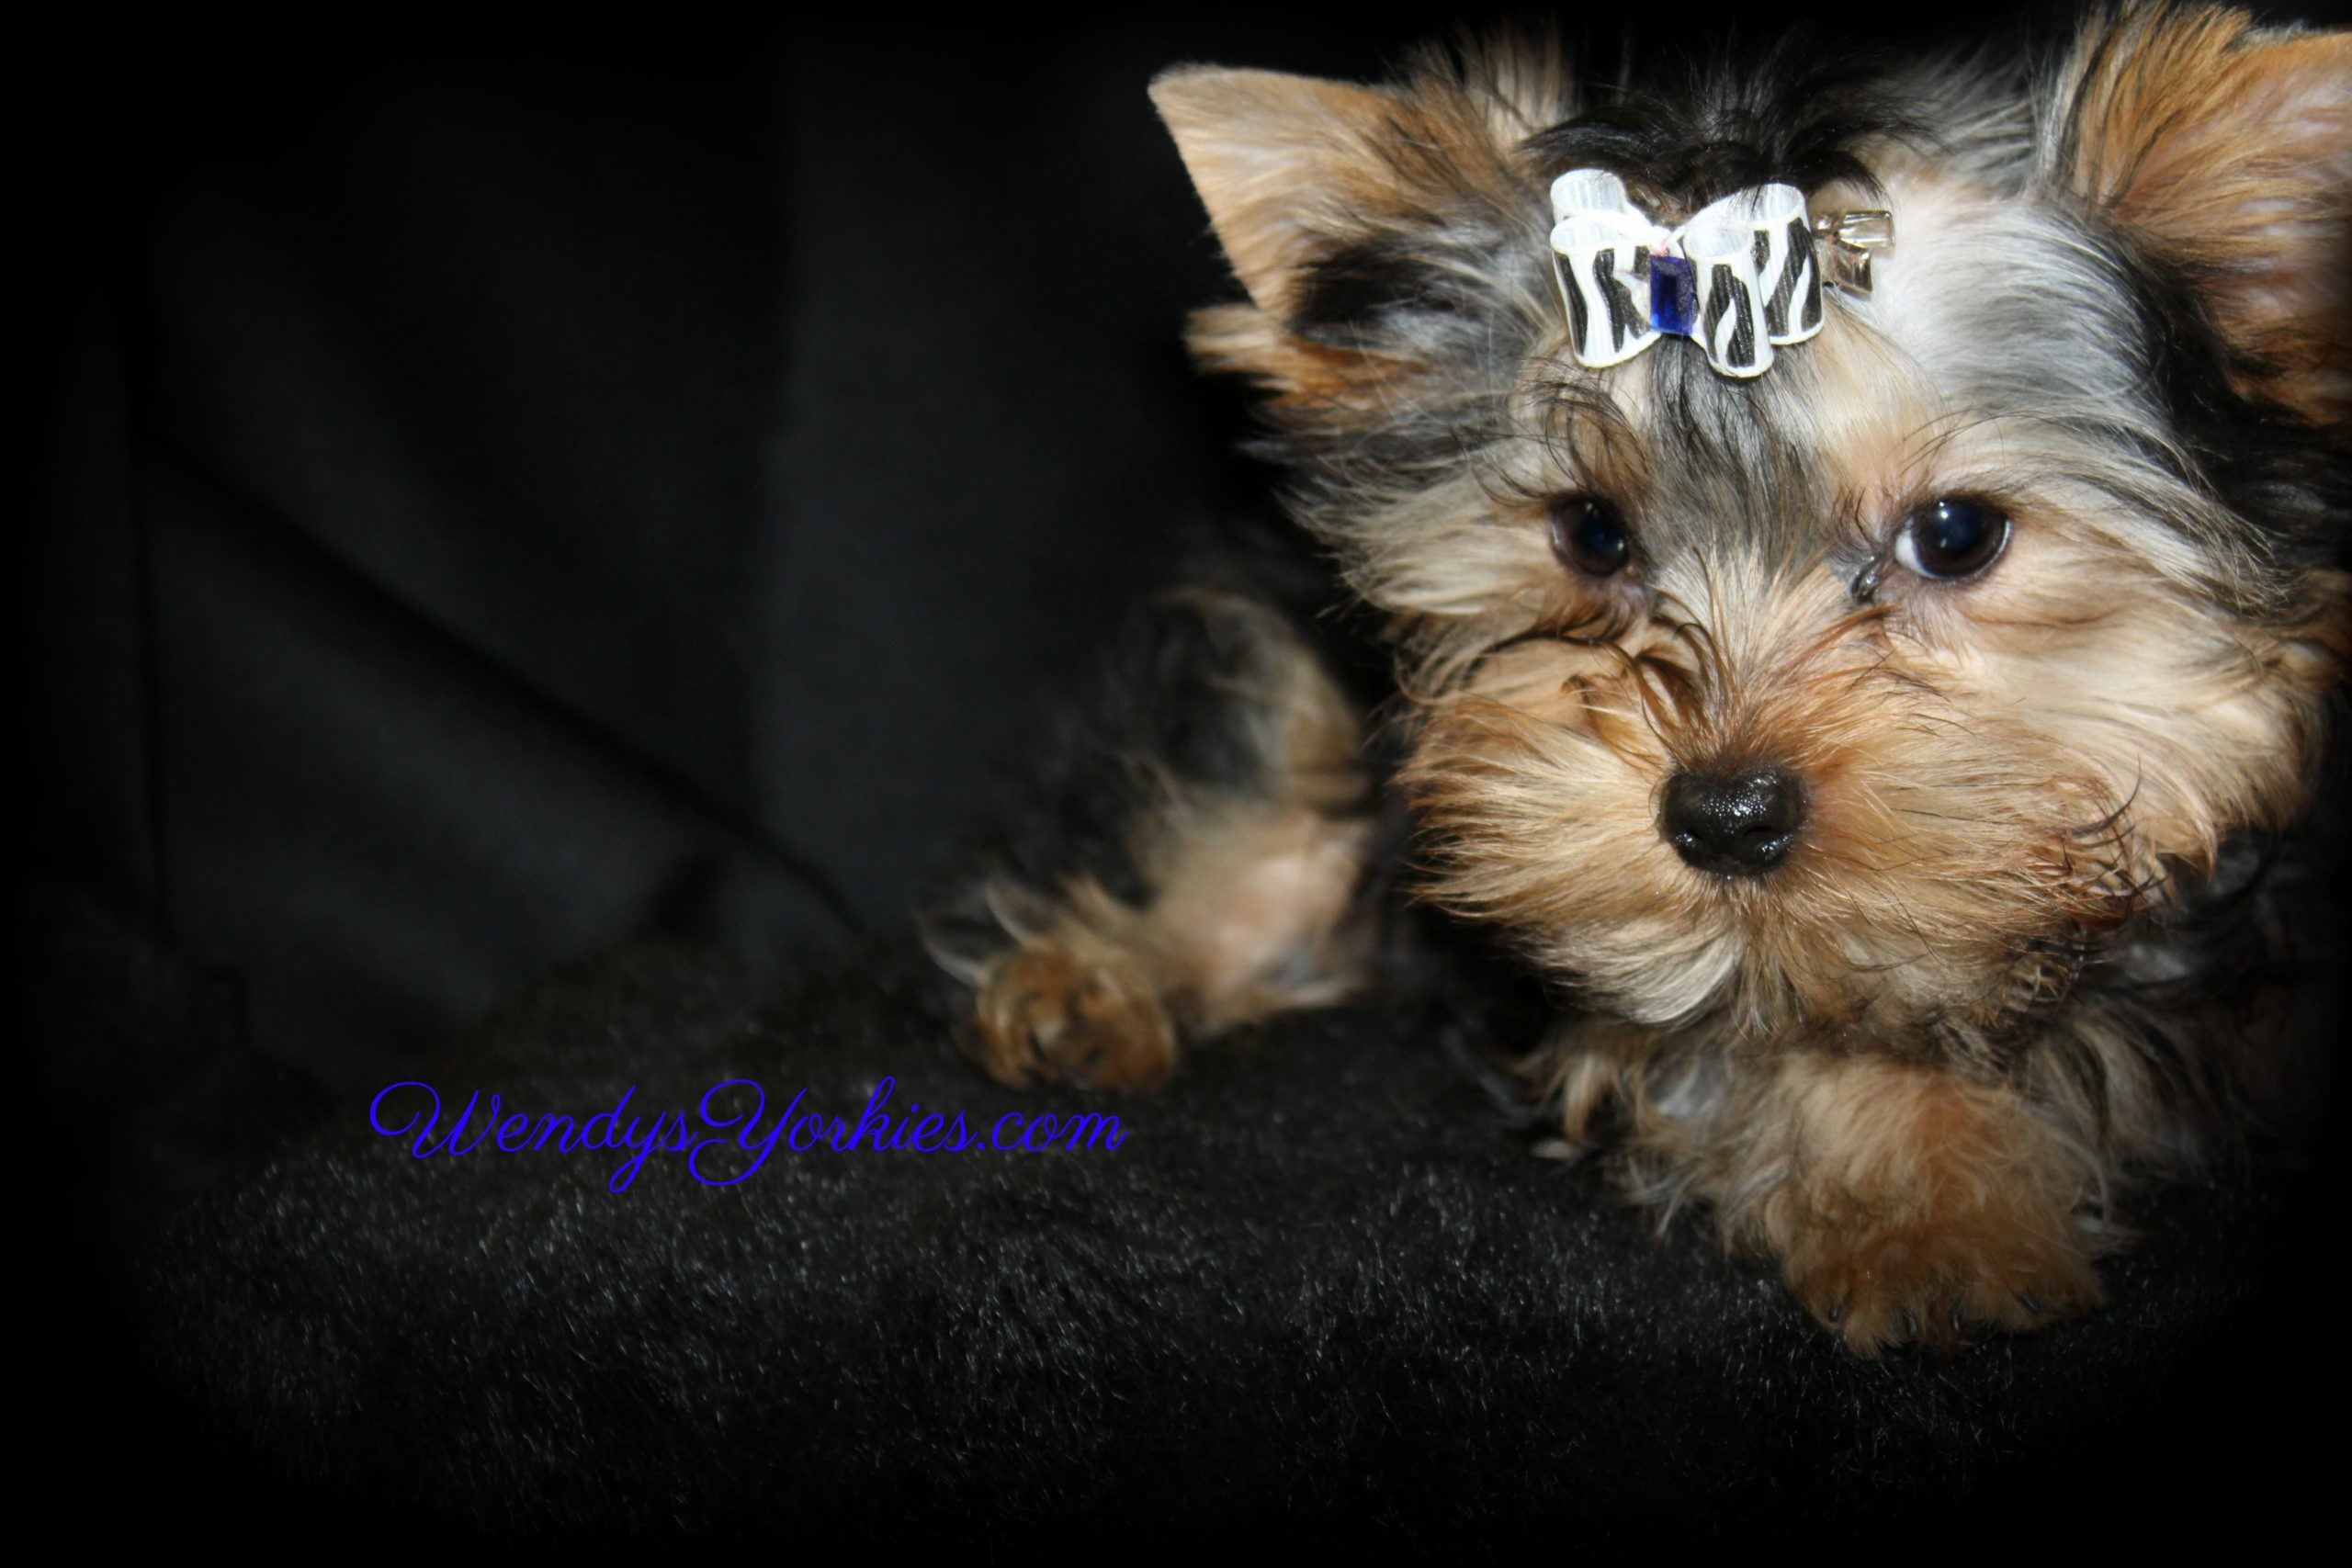 Teacup Male yorkie puppy for sale, WendysYorkies.com